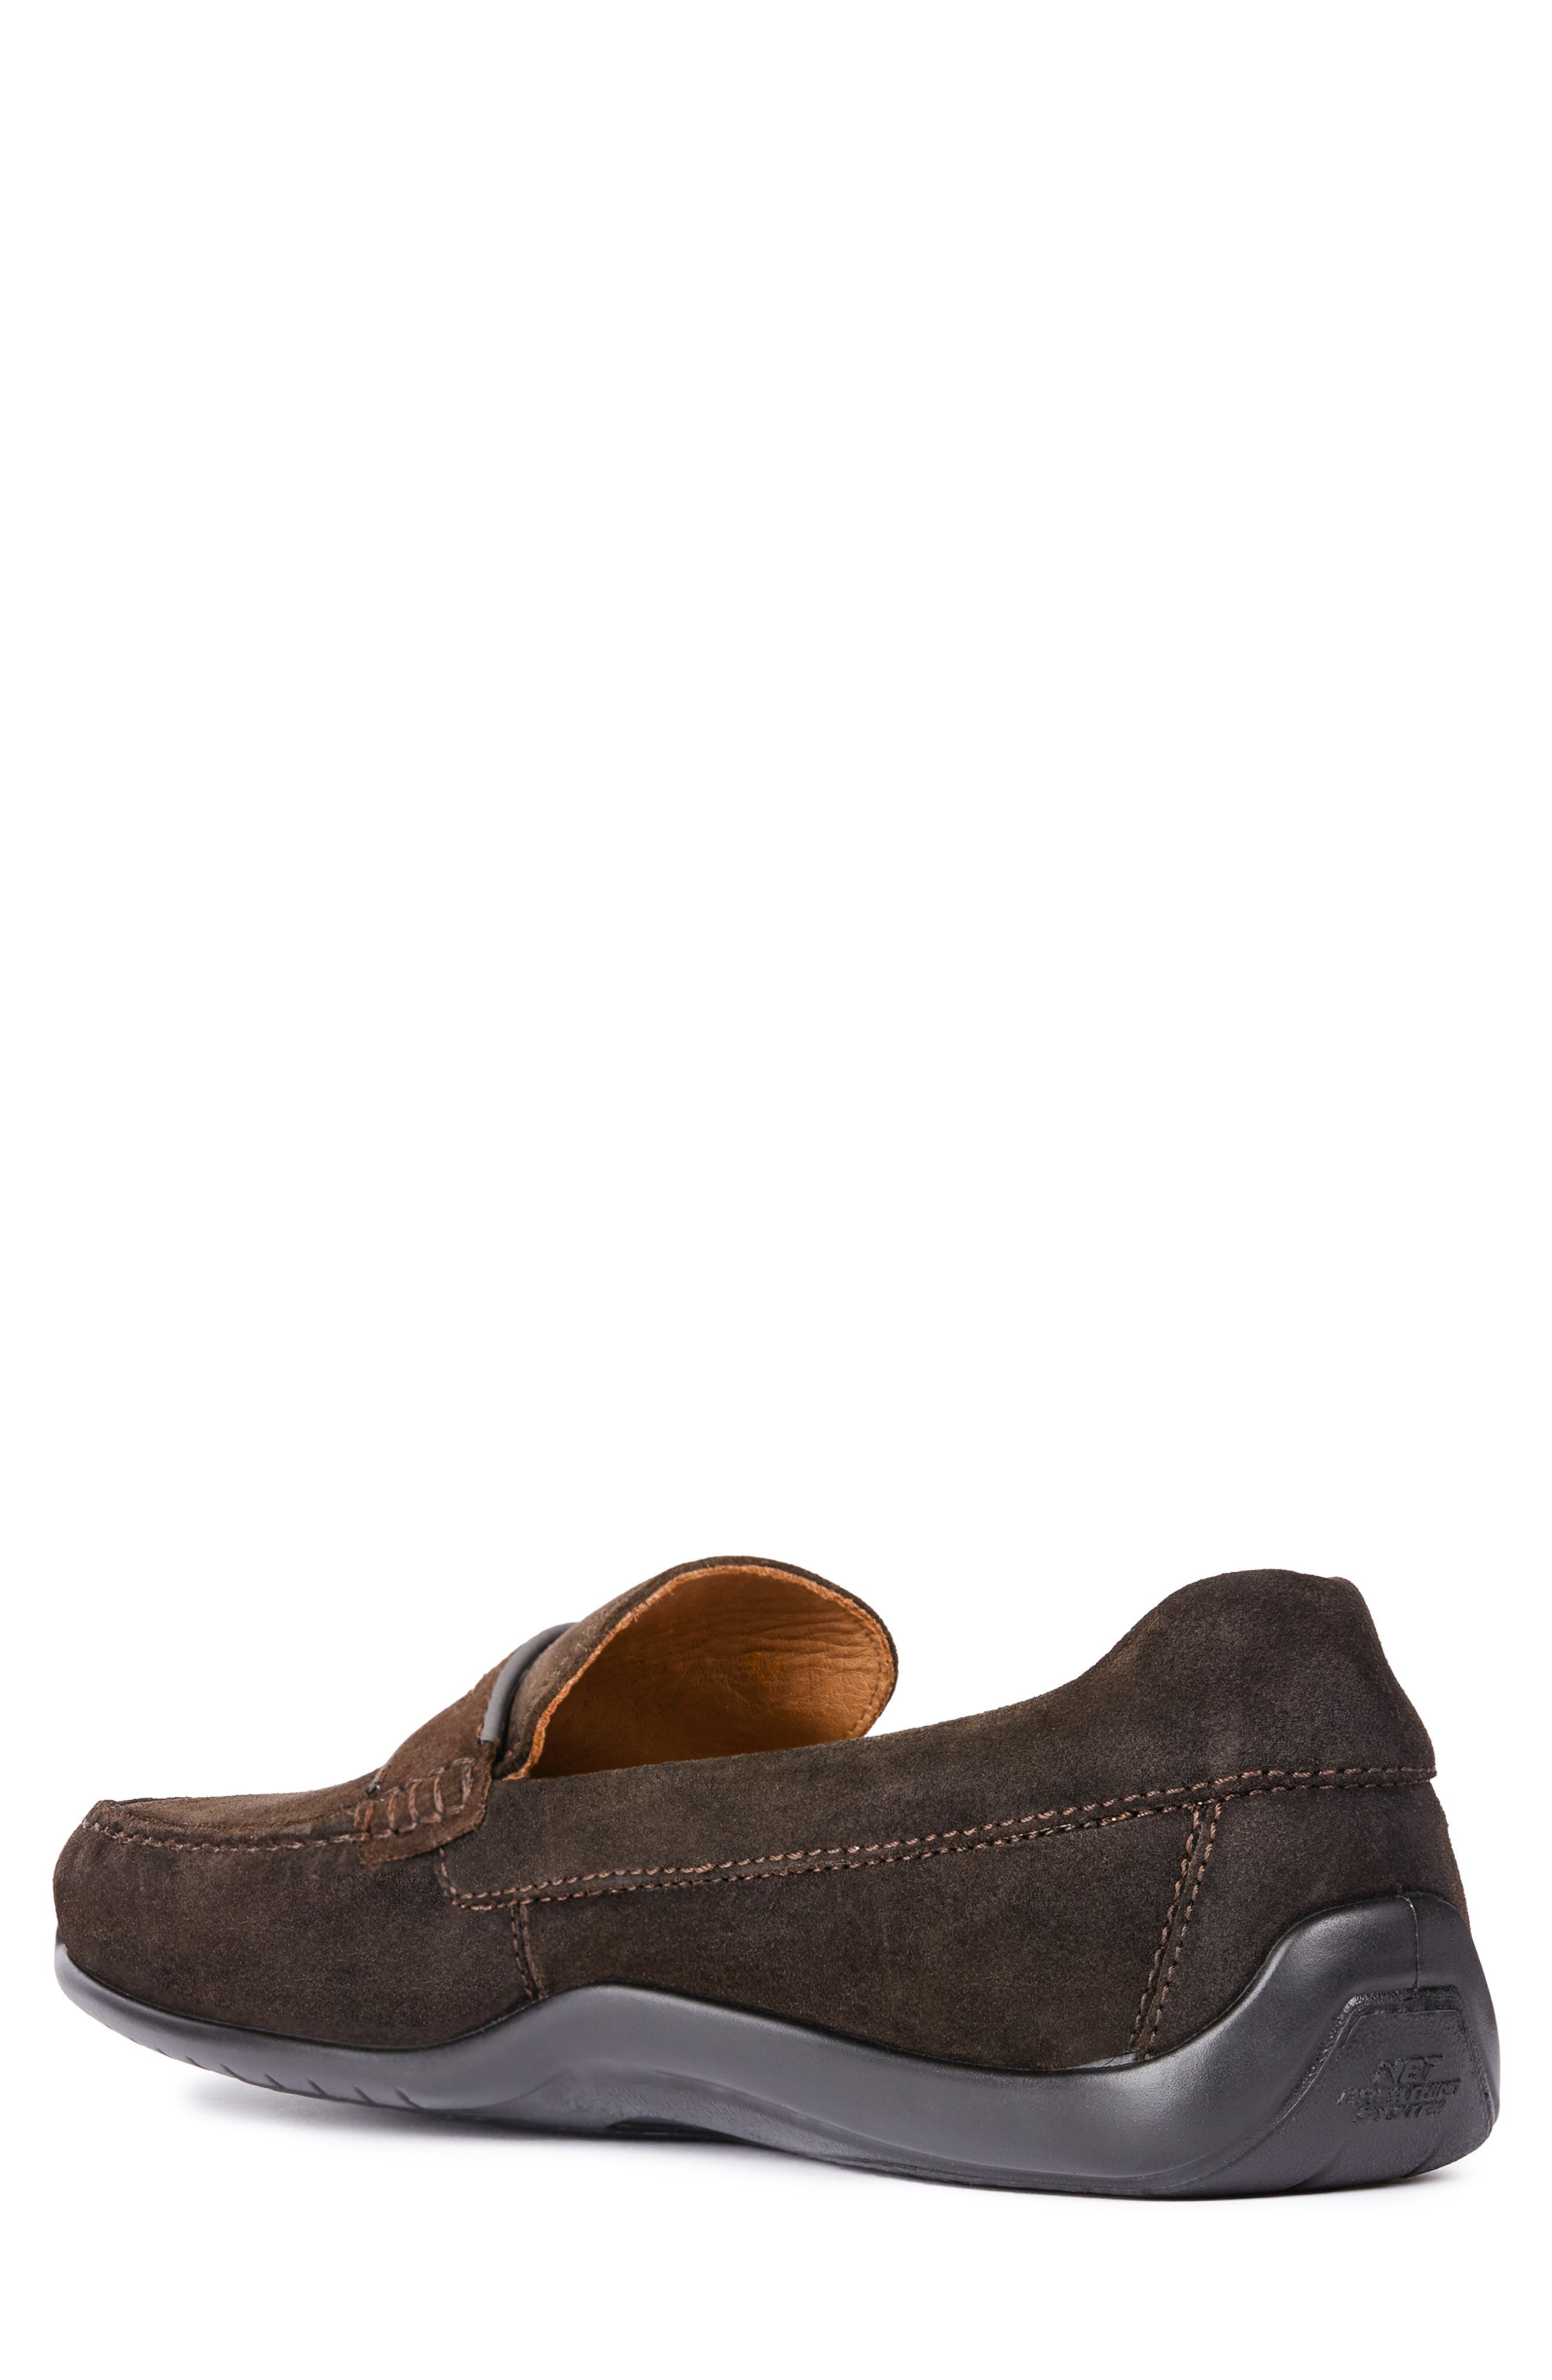 GEOX, Xense Mox 15 Penny Loafer, Alternate thumbnail 2, color, 248